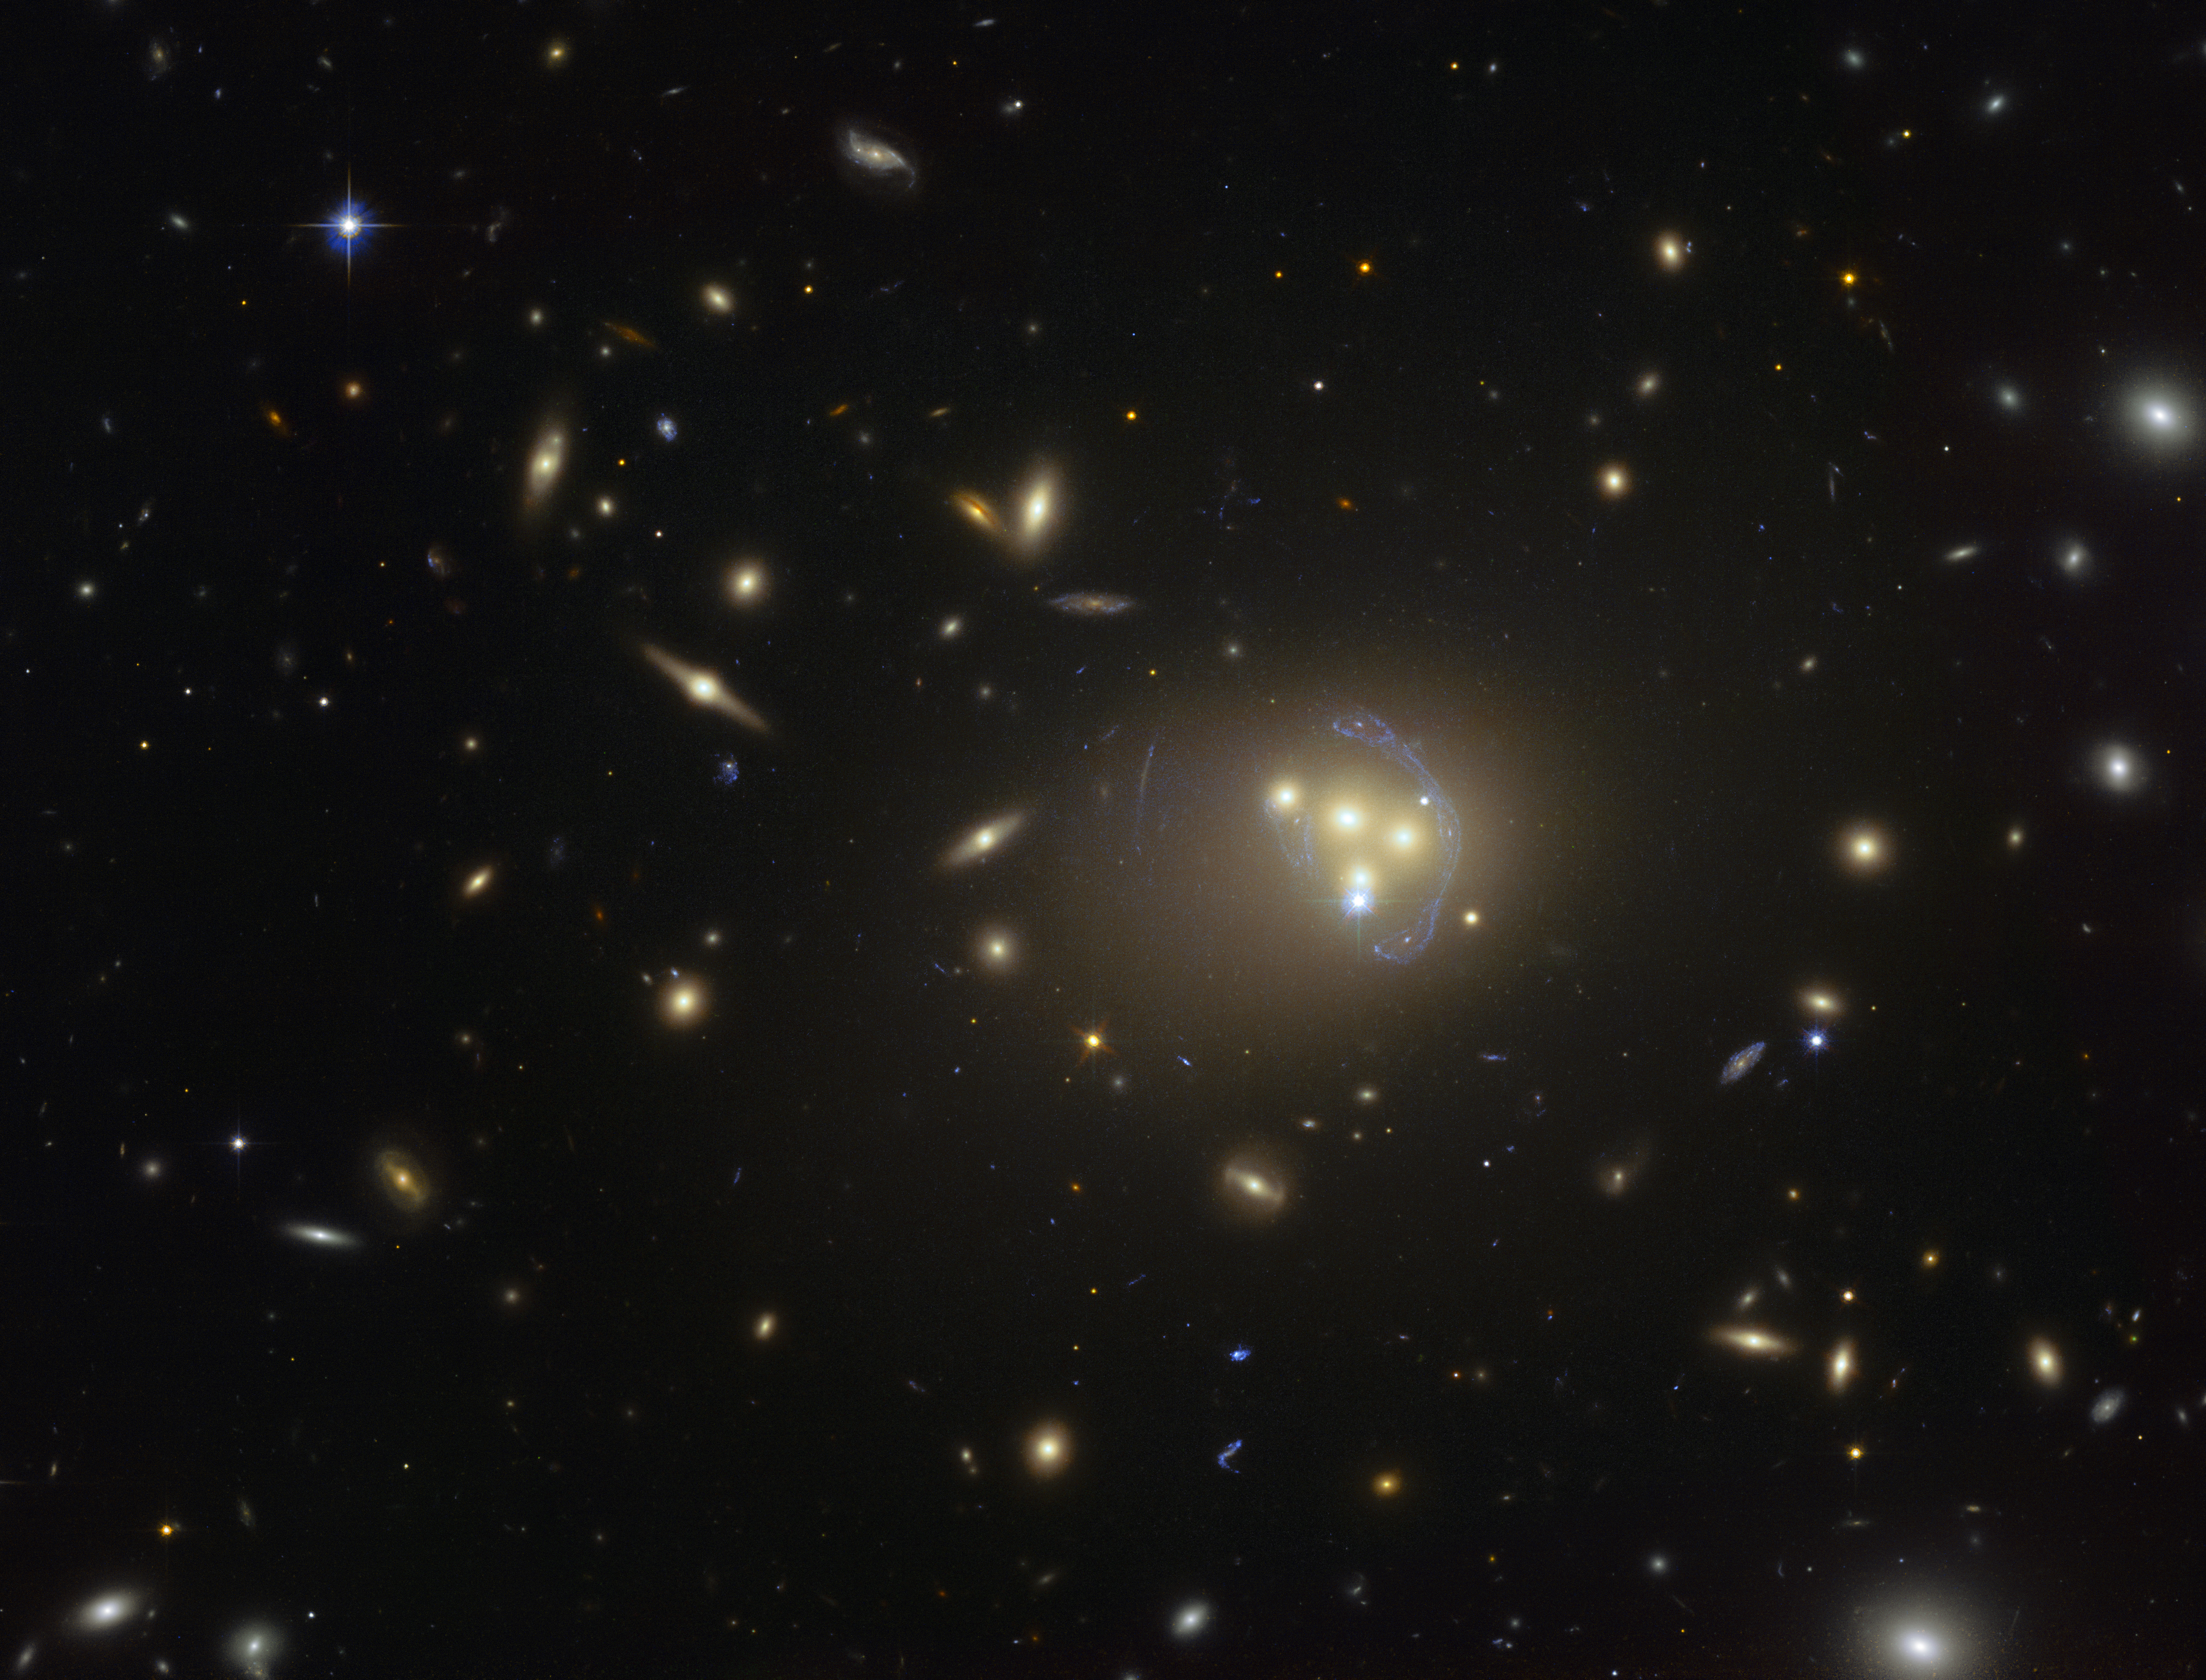 hubble image of the galaxy cluster abell